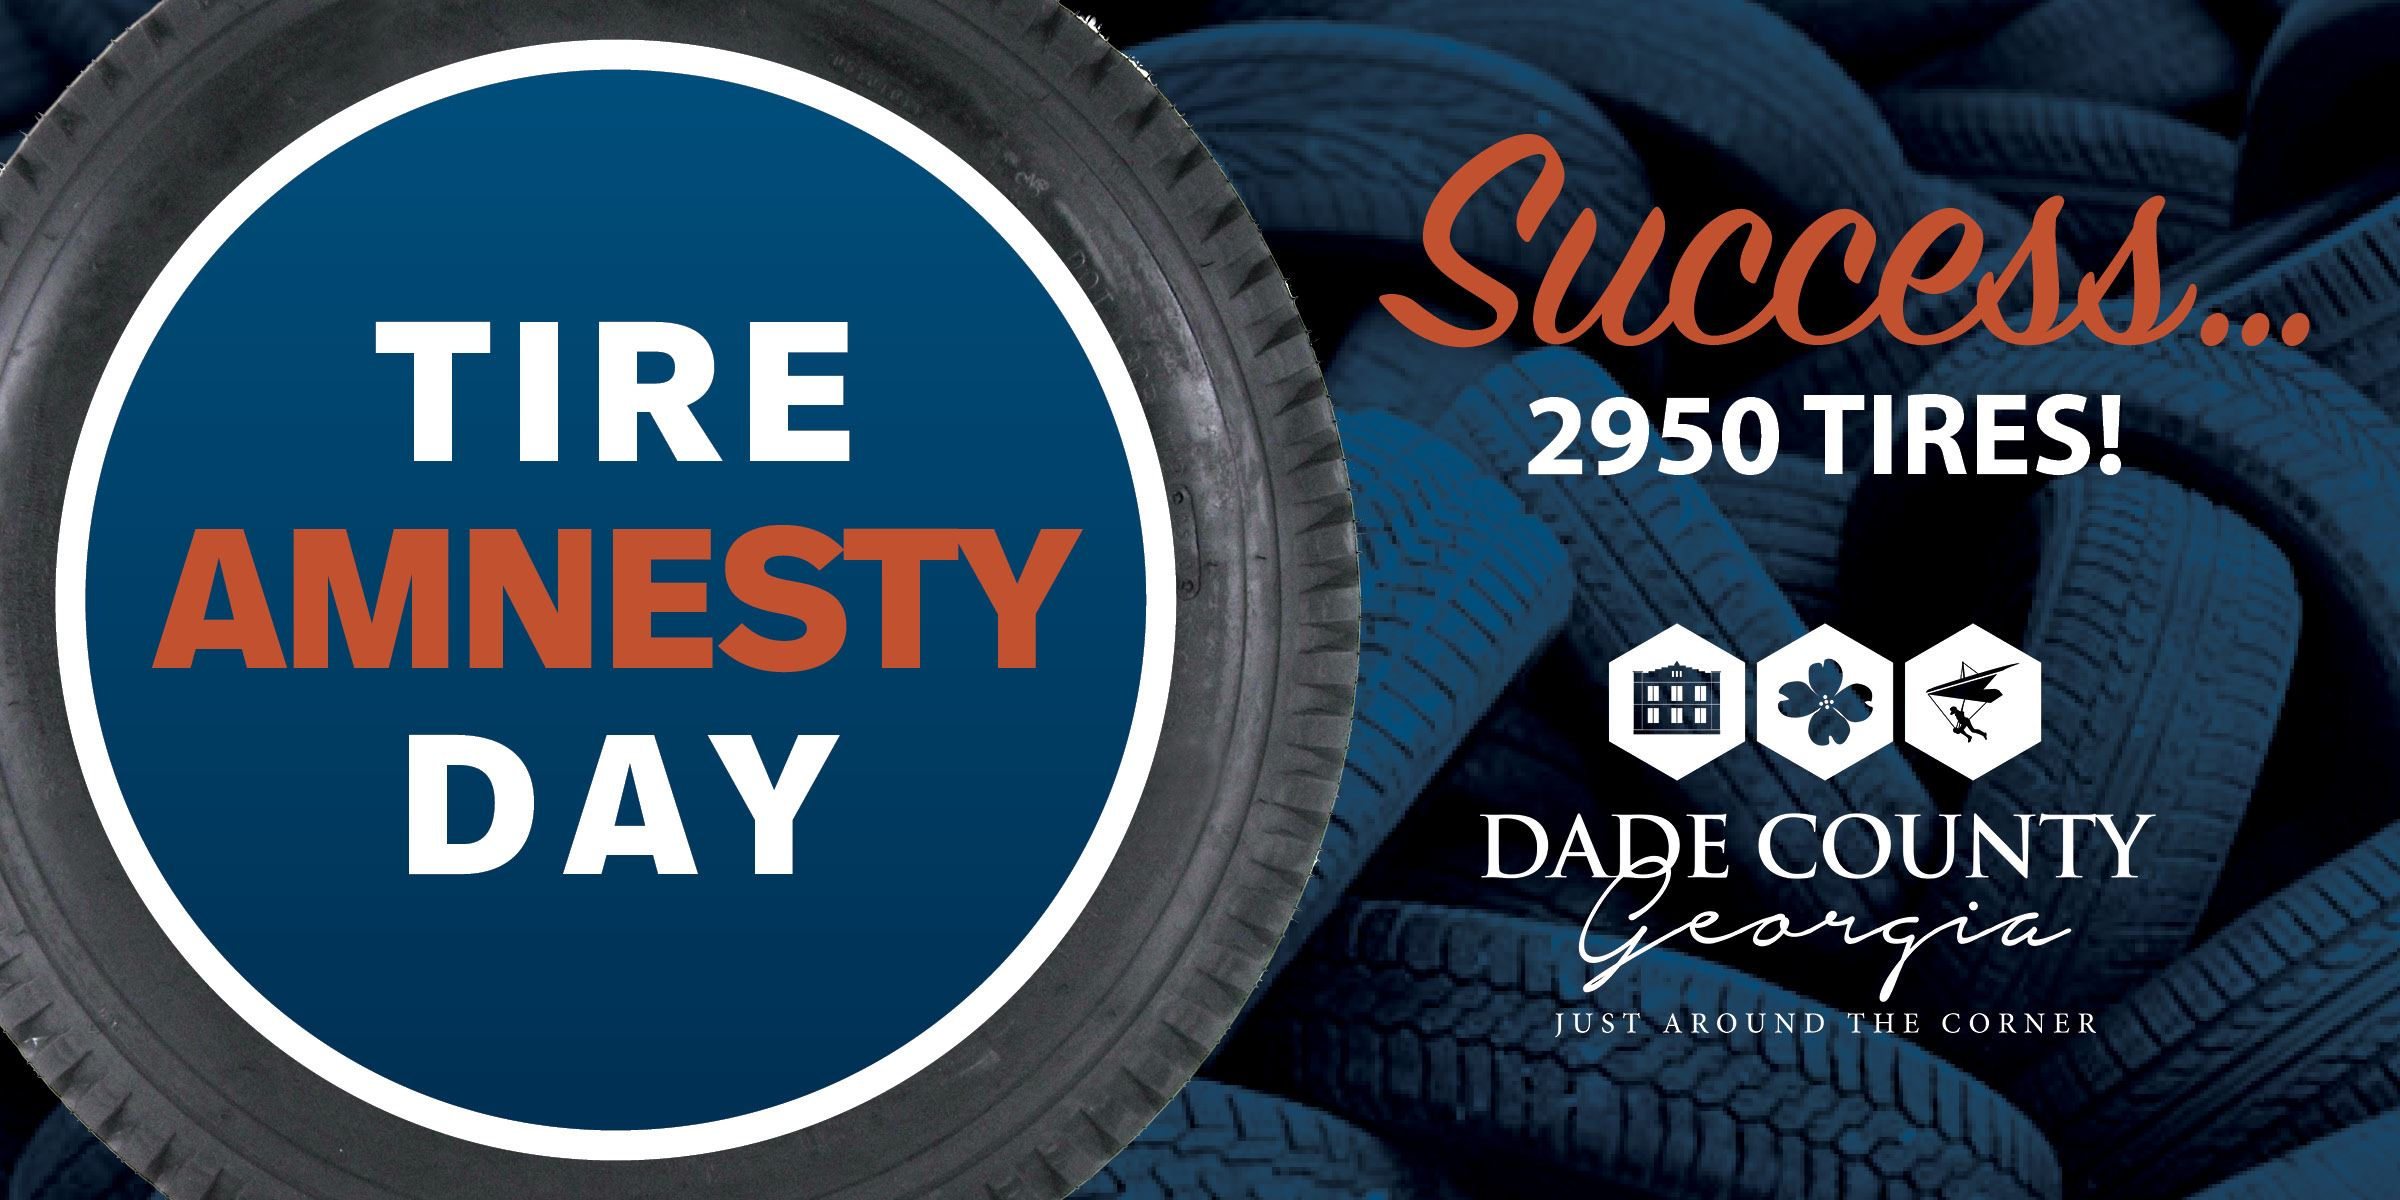 Tire Amnesty 2019 Success